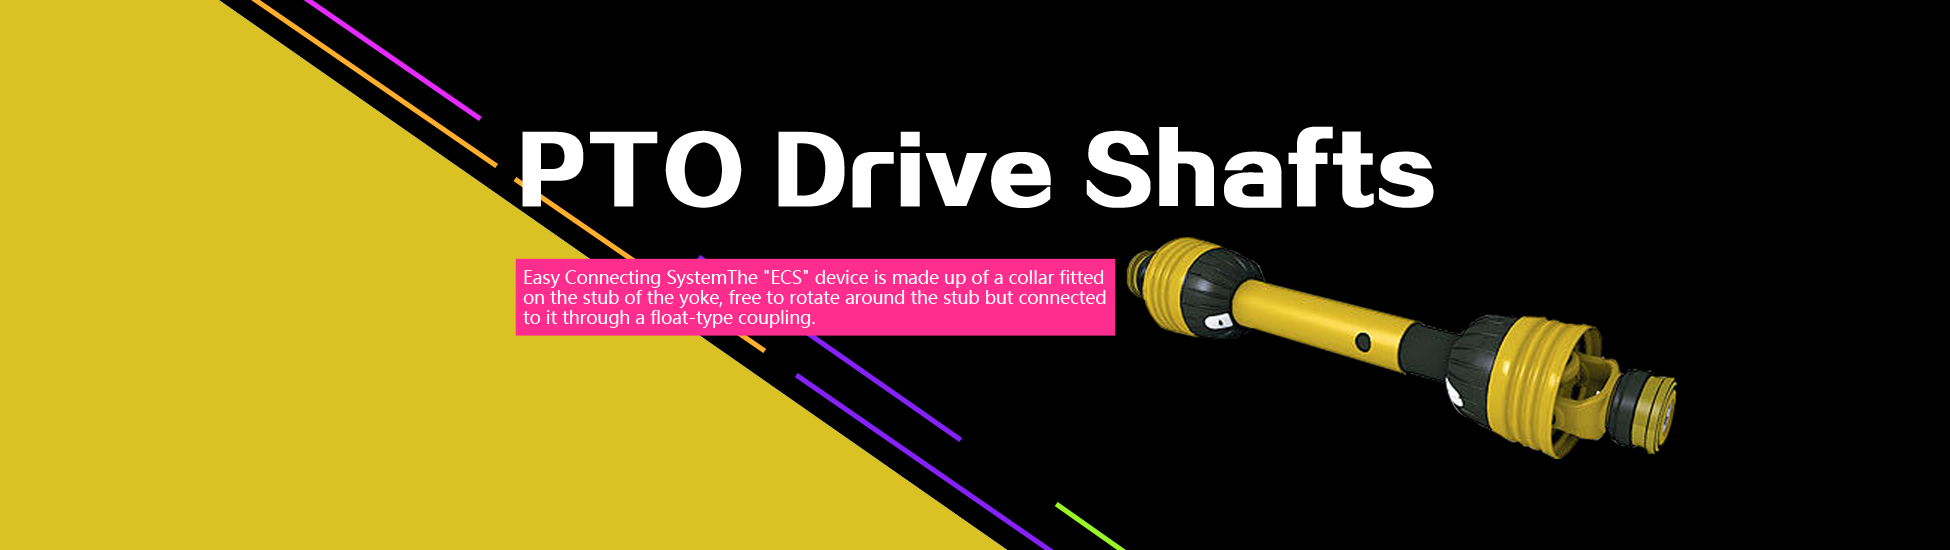 PTO drive shafts china manufacturers